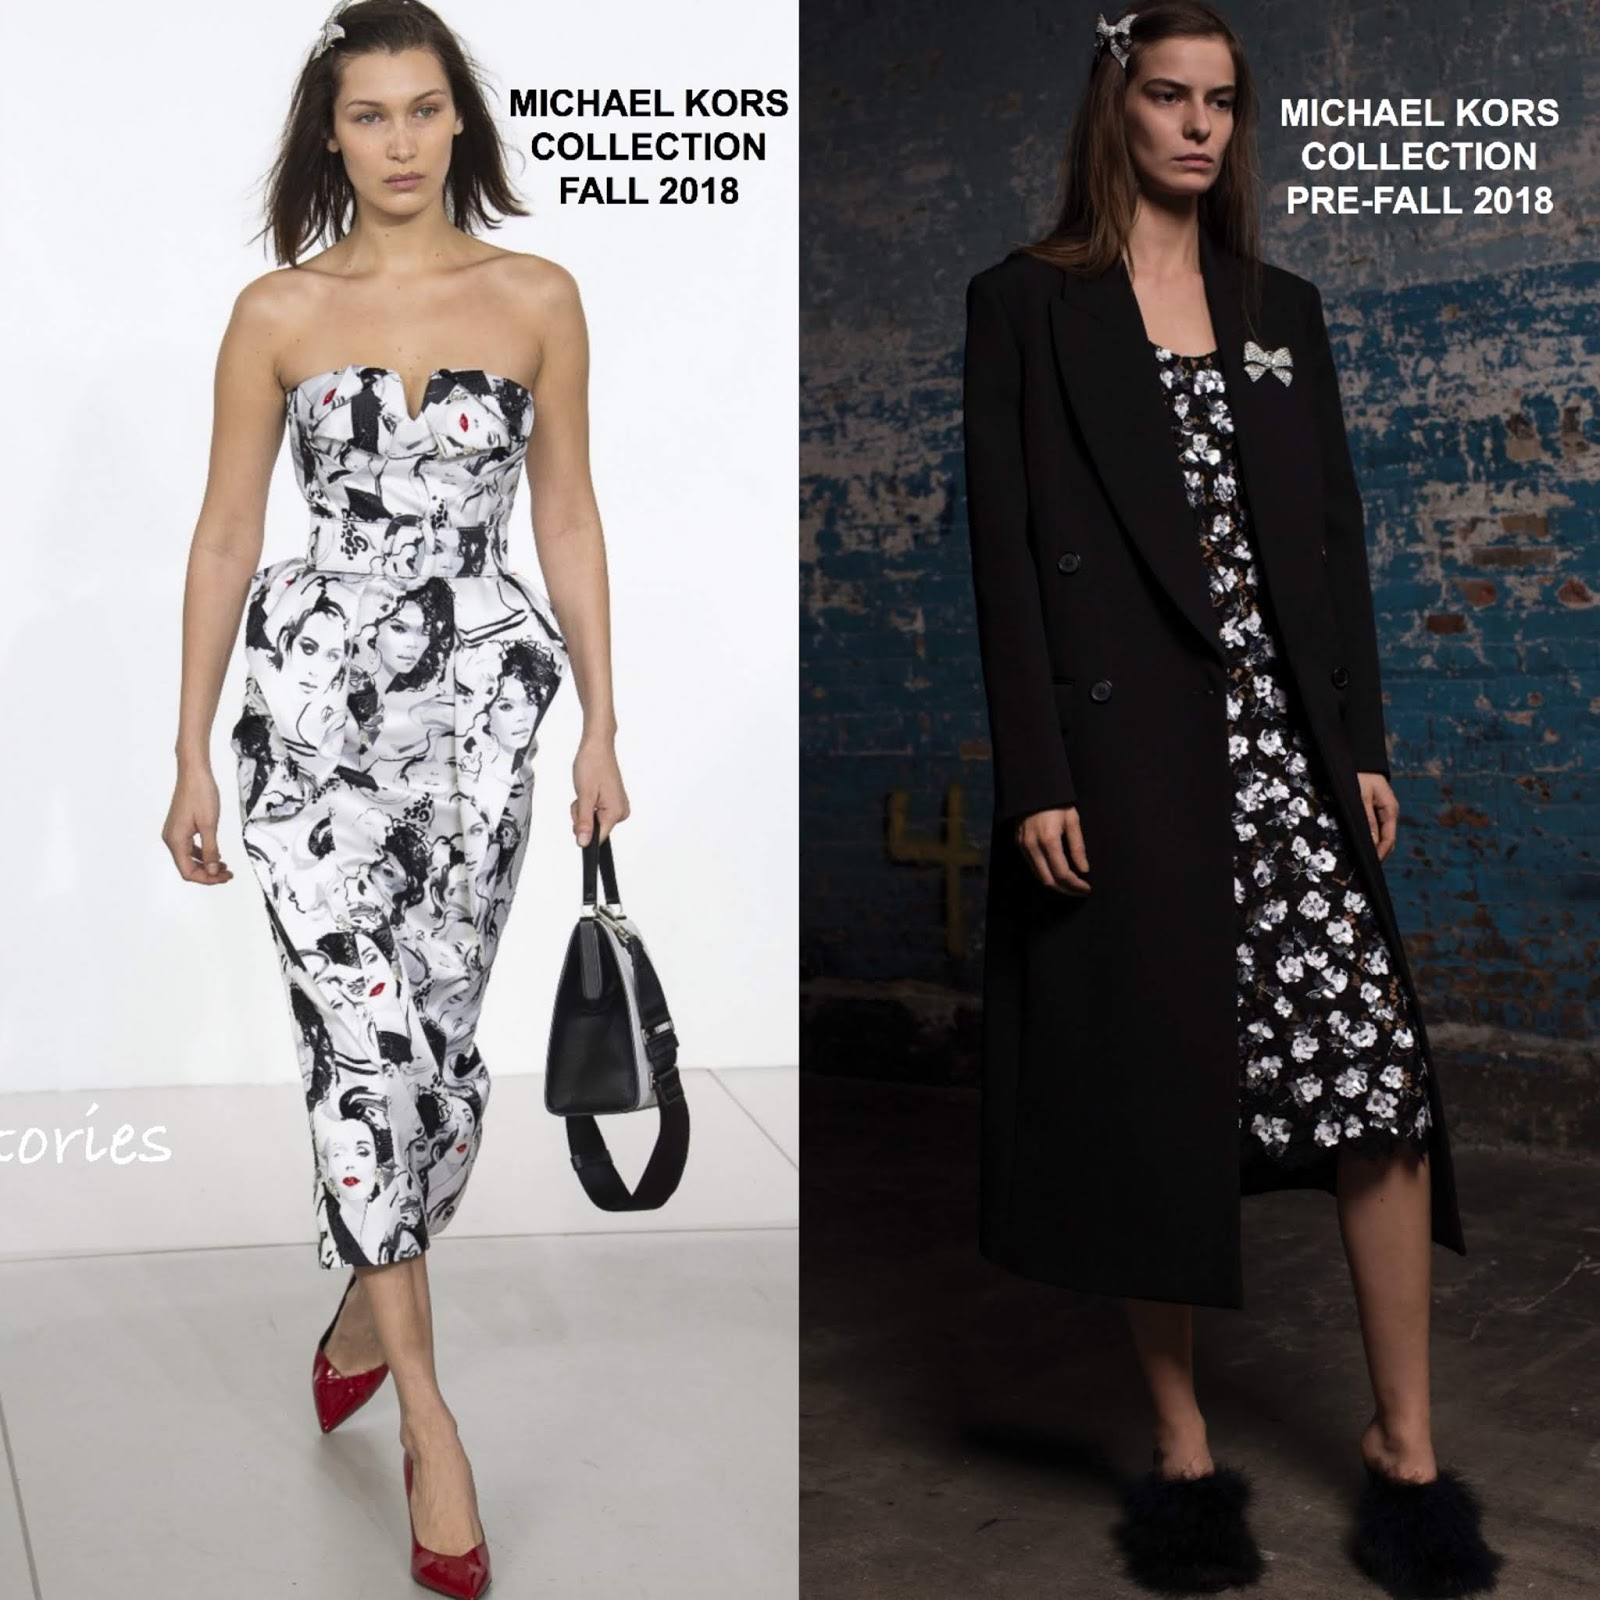 8b70488bd7baa If this looks familiar, that's because Jourdan Dunn wore it in June 2018.  The styling is a snooze but the dress fits her nicely.